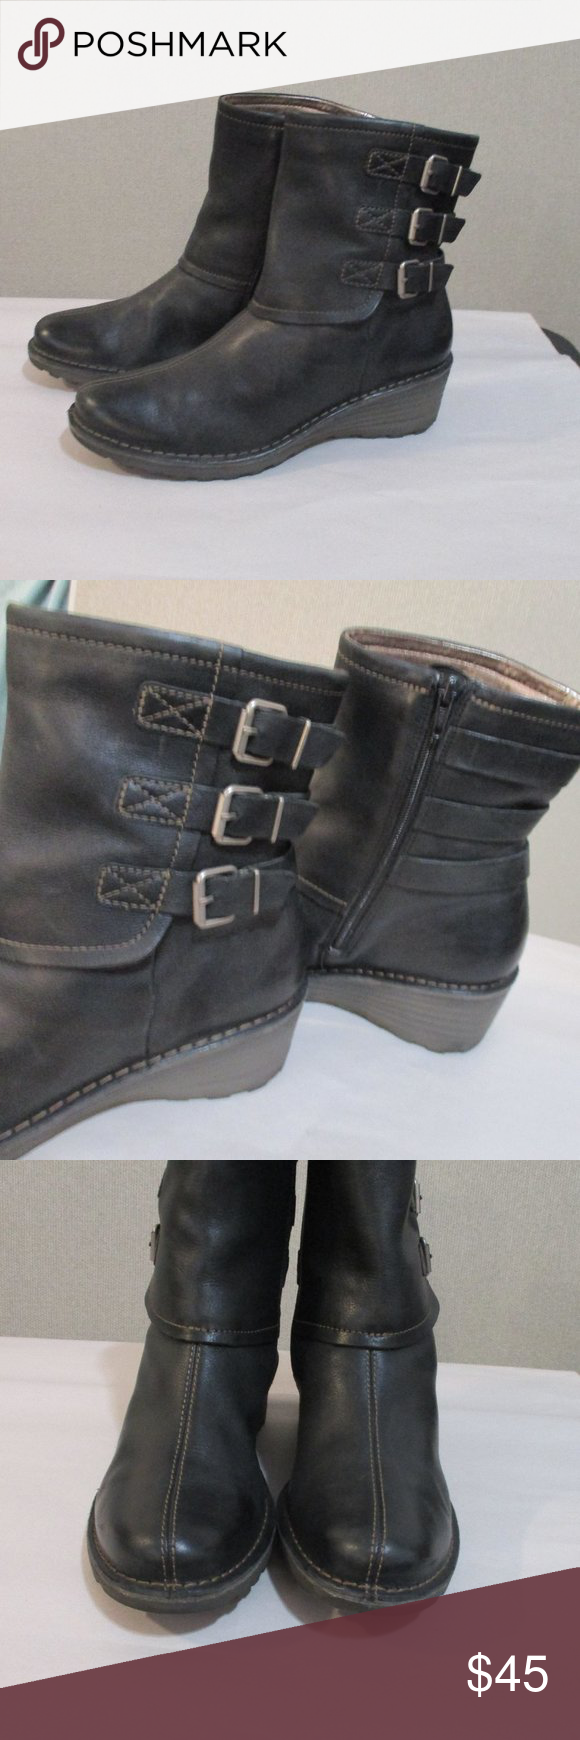 ecco boots size 41